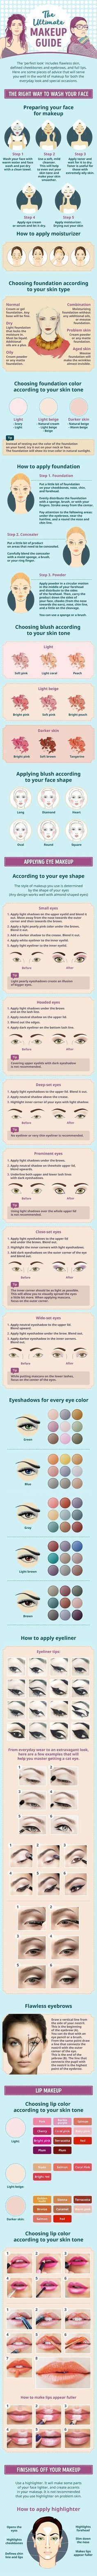 Best #makeup Tutorials for Teens -The Ultimate Makeup Guide You Can't Live Without - Easy Makeup Ideas for Beginners - Step by Step Tutorials for Foundation, Eye Shadow, Lipstick, Cheeks, Contour, Eyebrows and Eyes - Awesome Makeup Hacks and Tips for Simple DIY Beauty - Day and Evening Looks http://diyprojectsforteens.com/makeup-tutorials-teens #contouringmakeup #lipsticktutorlas